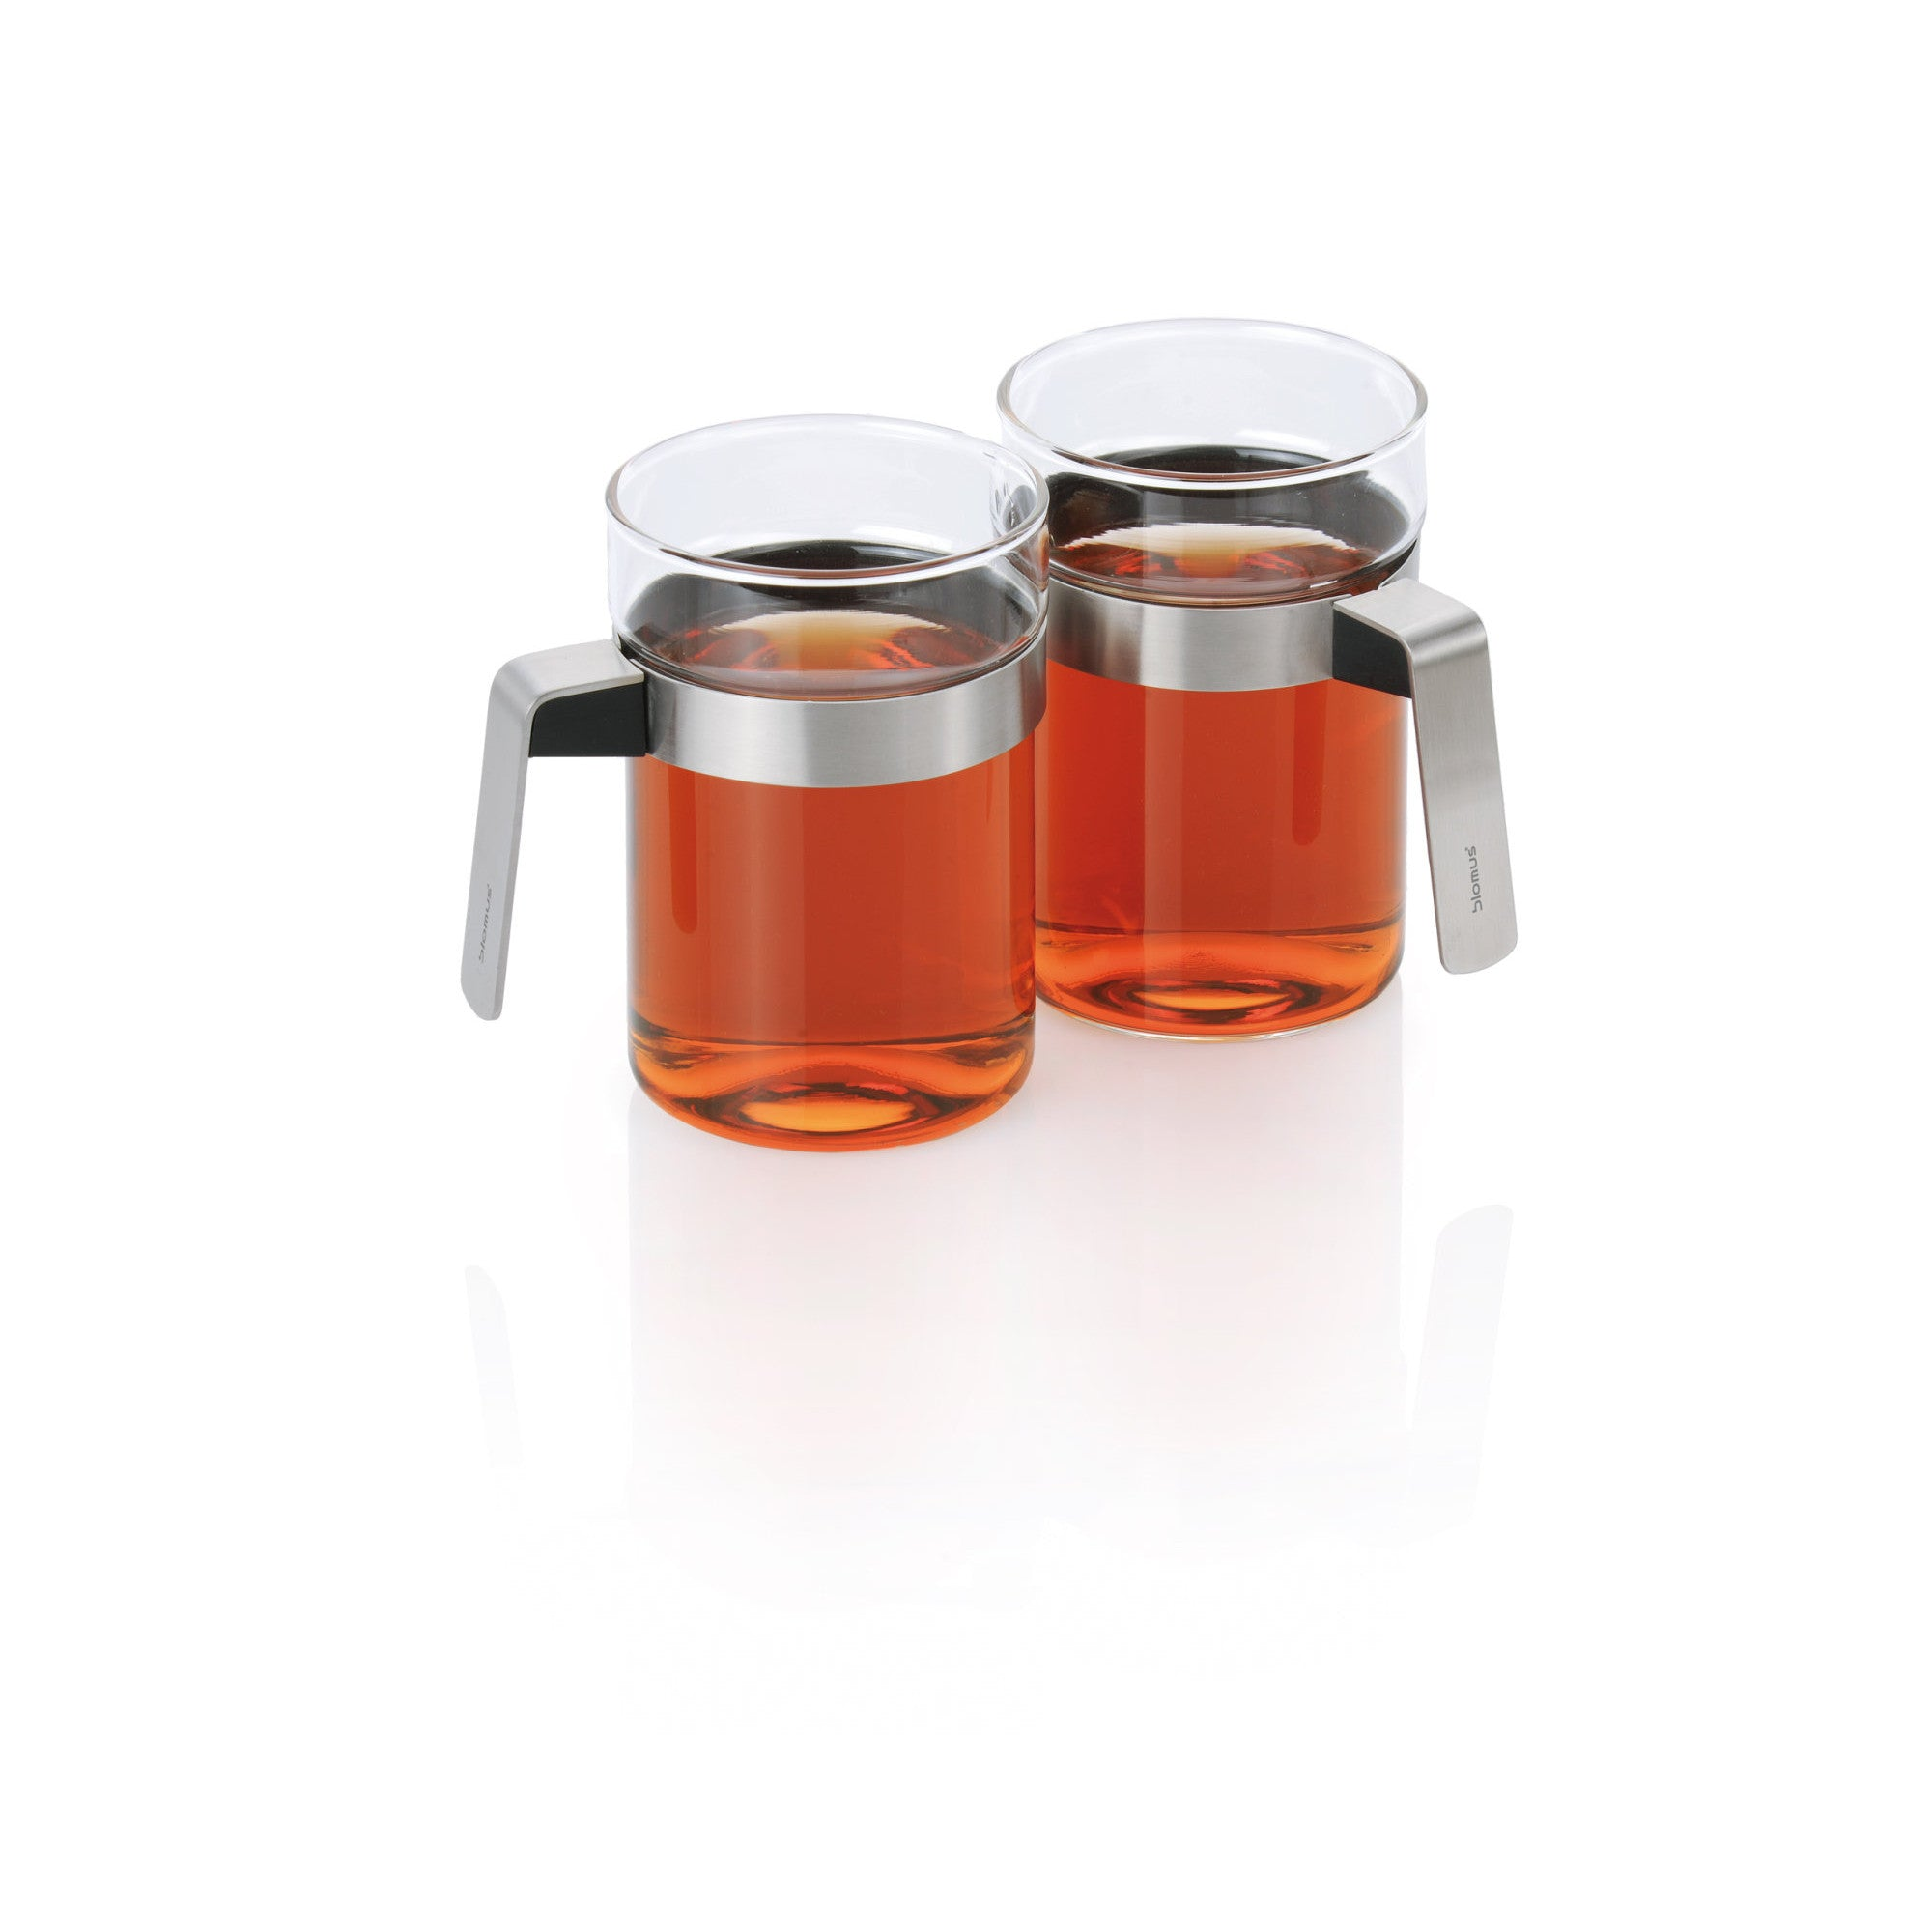 2 pc Tea Glass set Glass 300 ml SENCHA